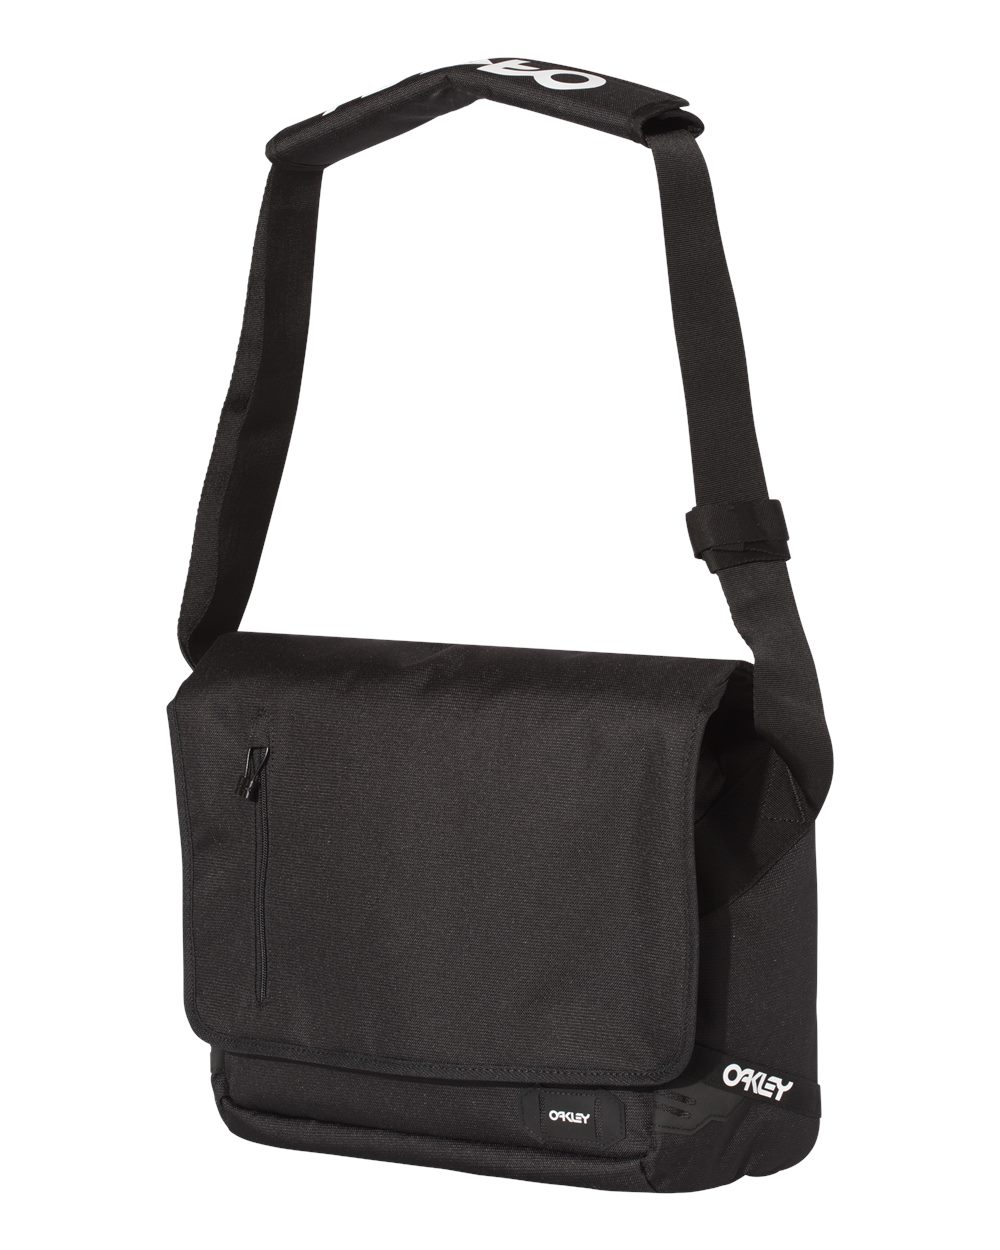 Oakley 921452ODM - 15L Street Messenger Bag